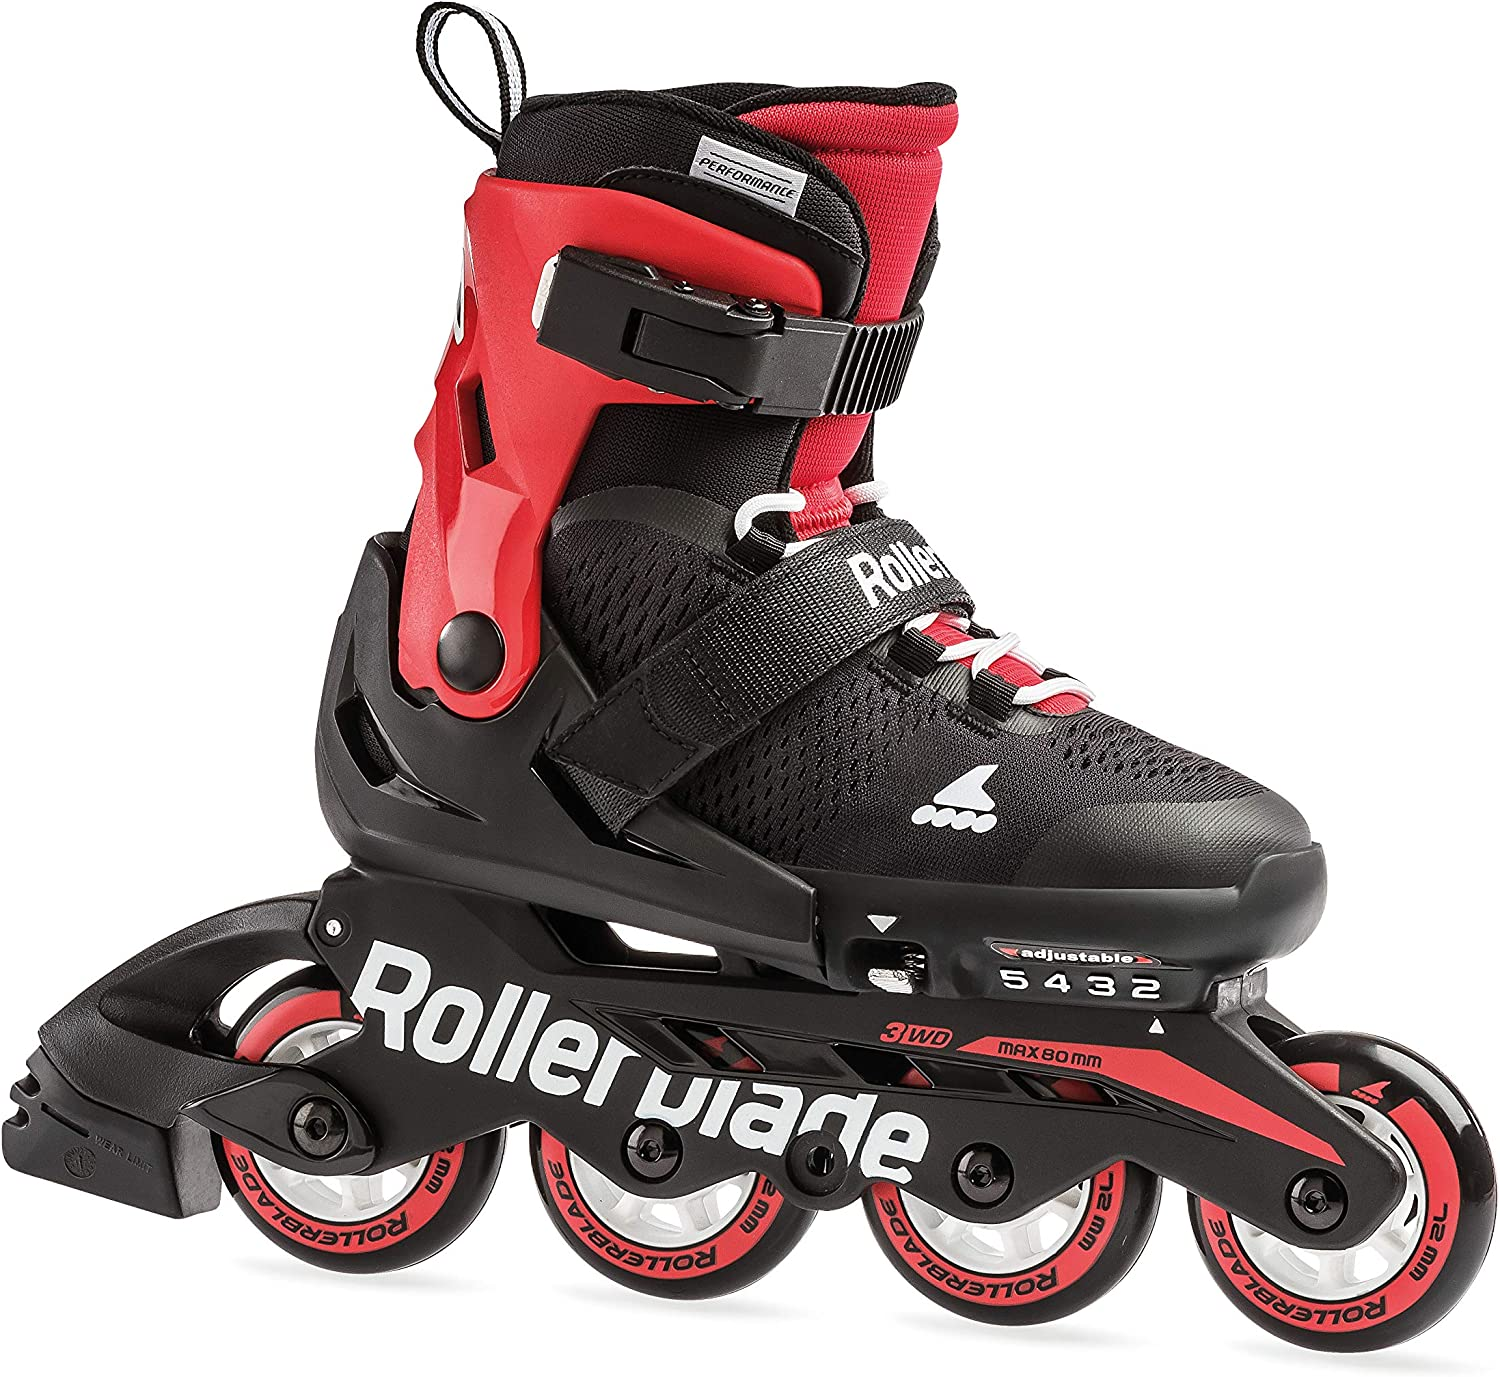 Rollerblade Microblade Inline Skate